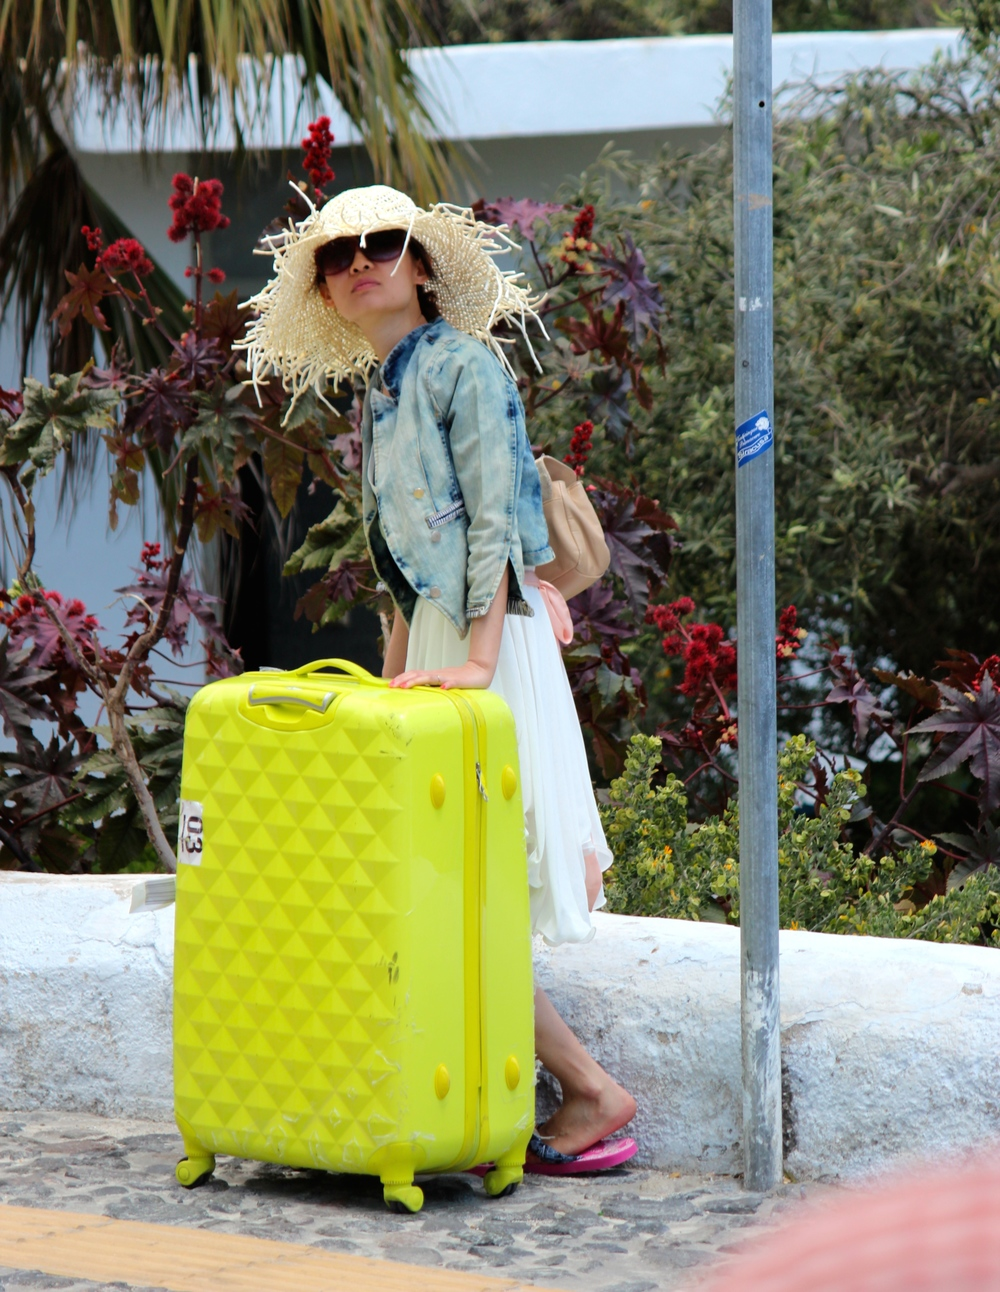 yellow suitcase girl.jpg